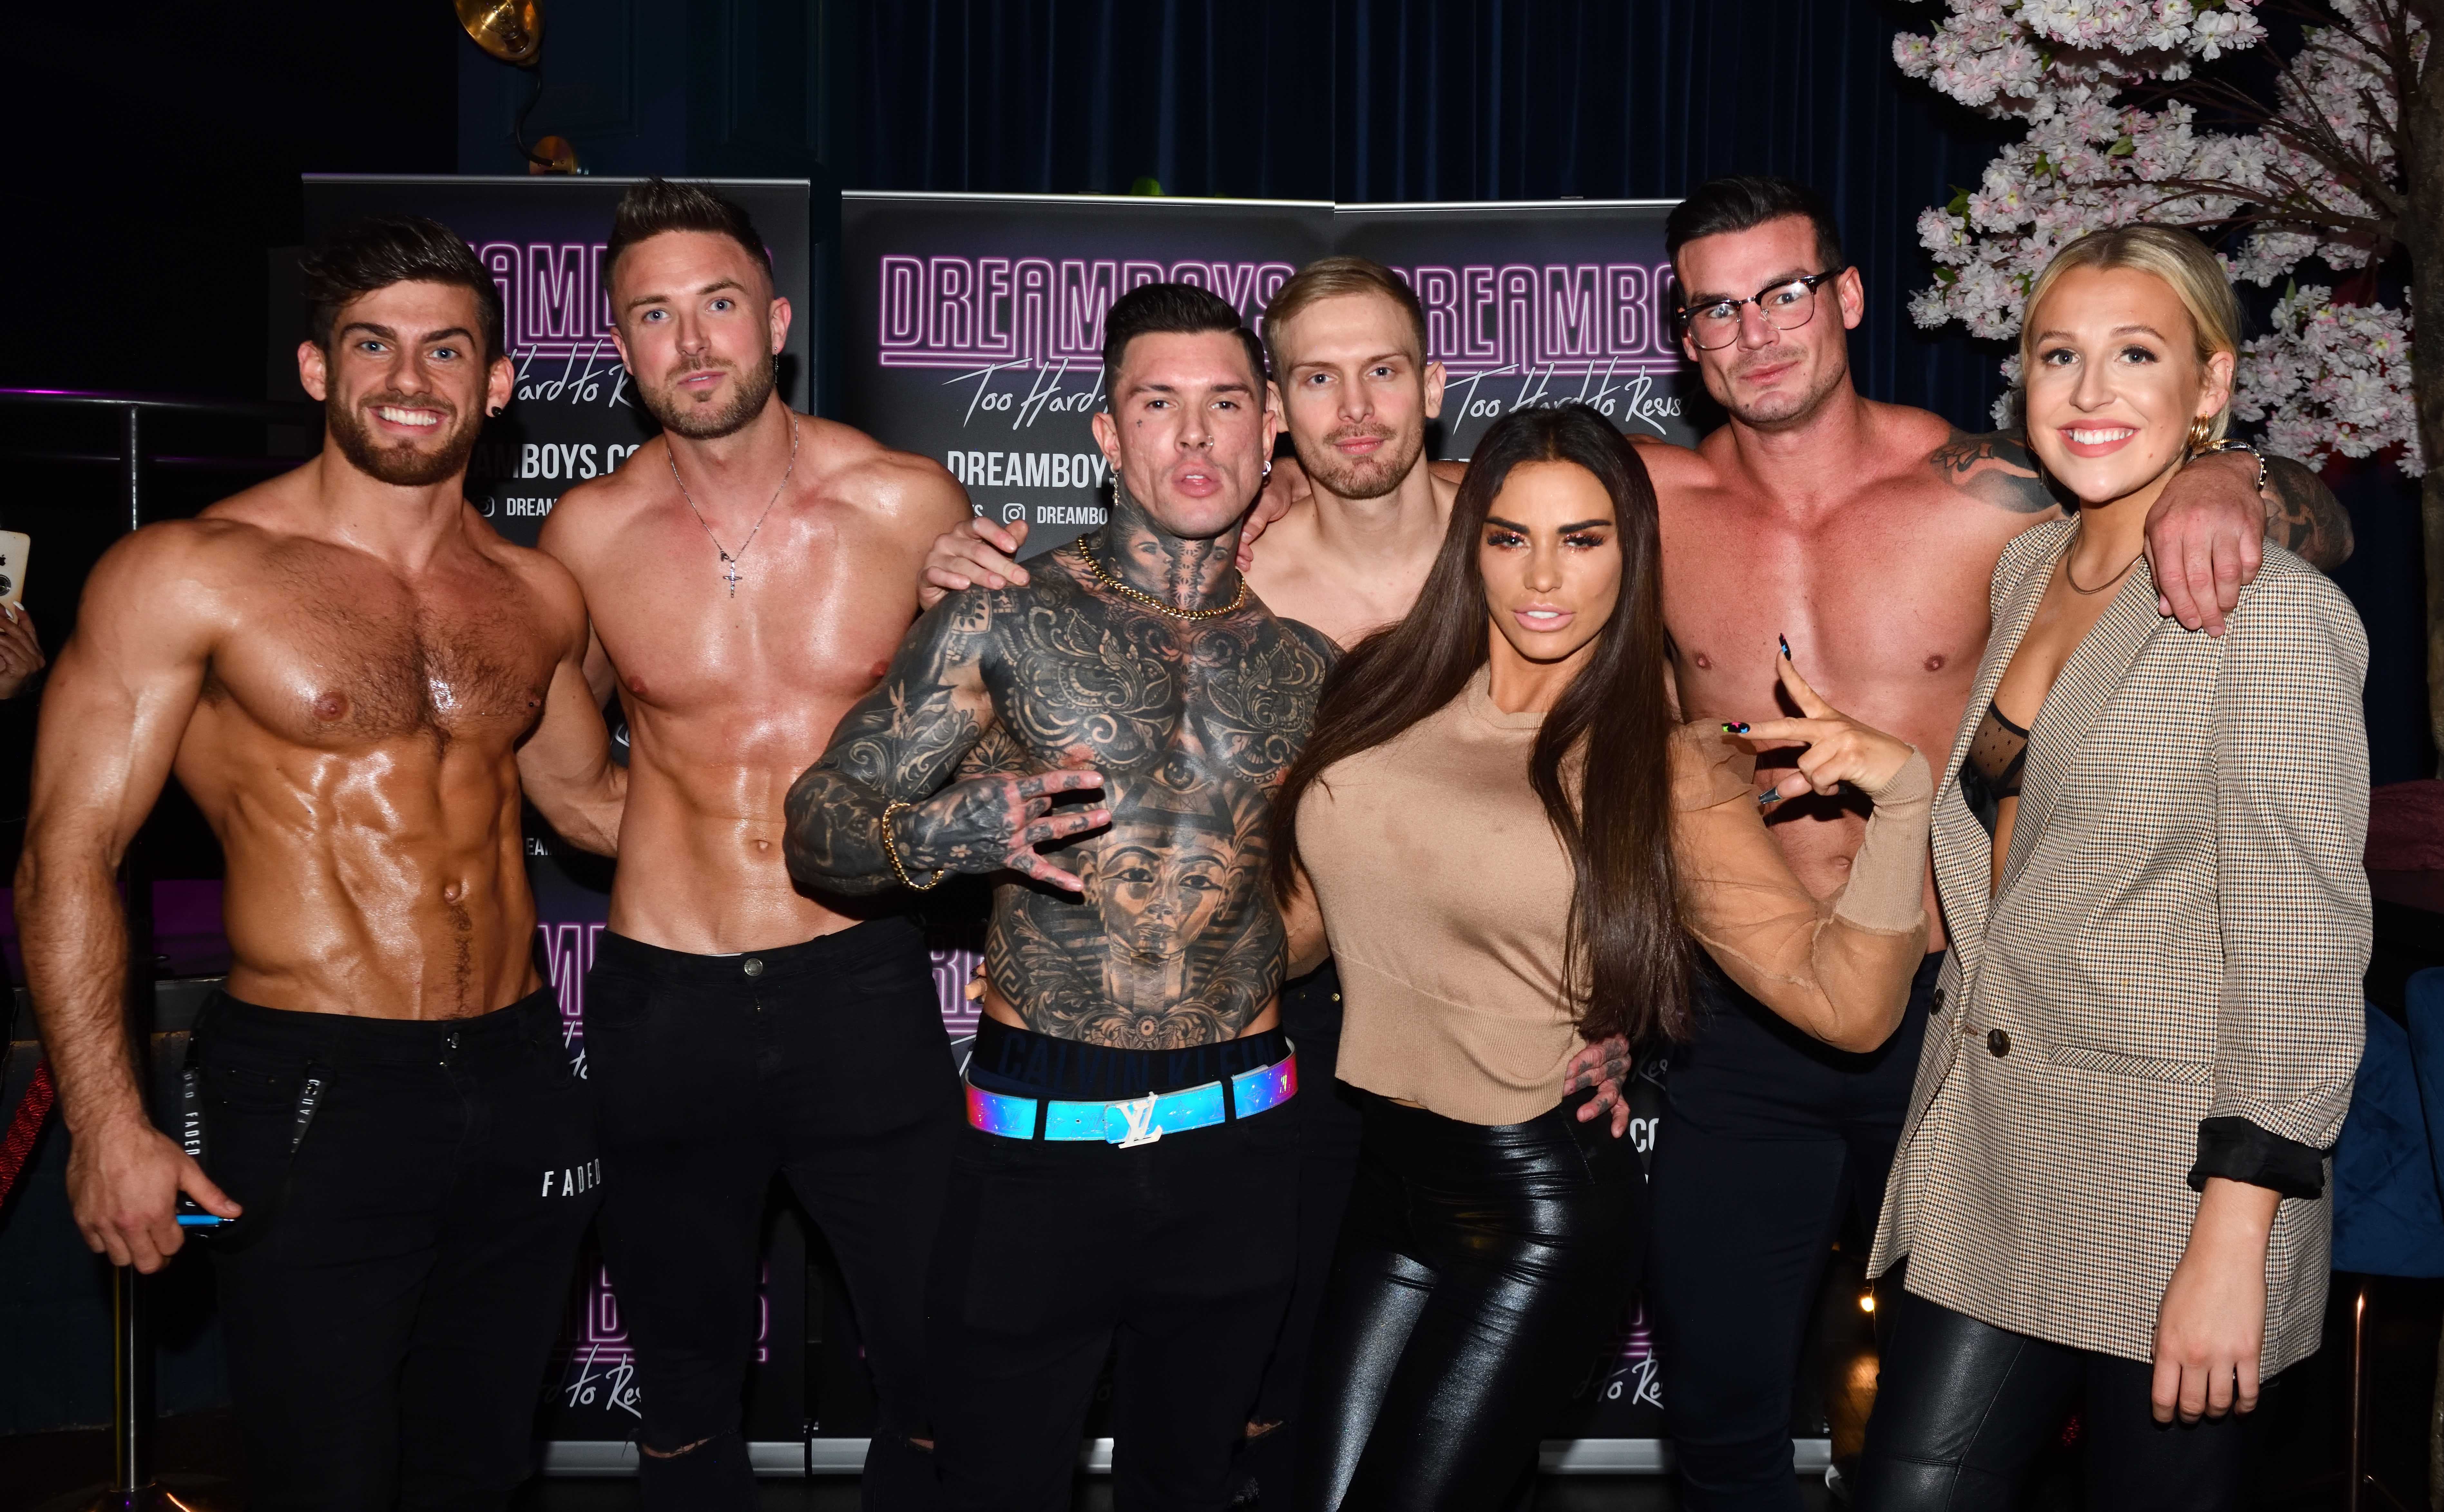 Katie Price gets lap dance as she judges Dreamboys auditions